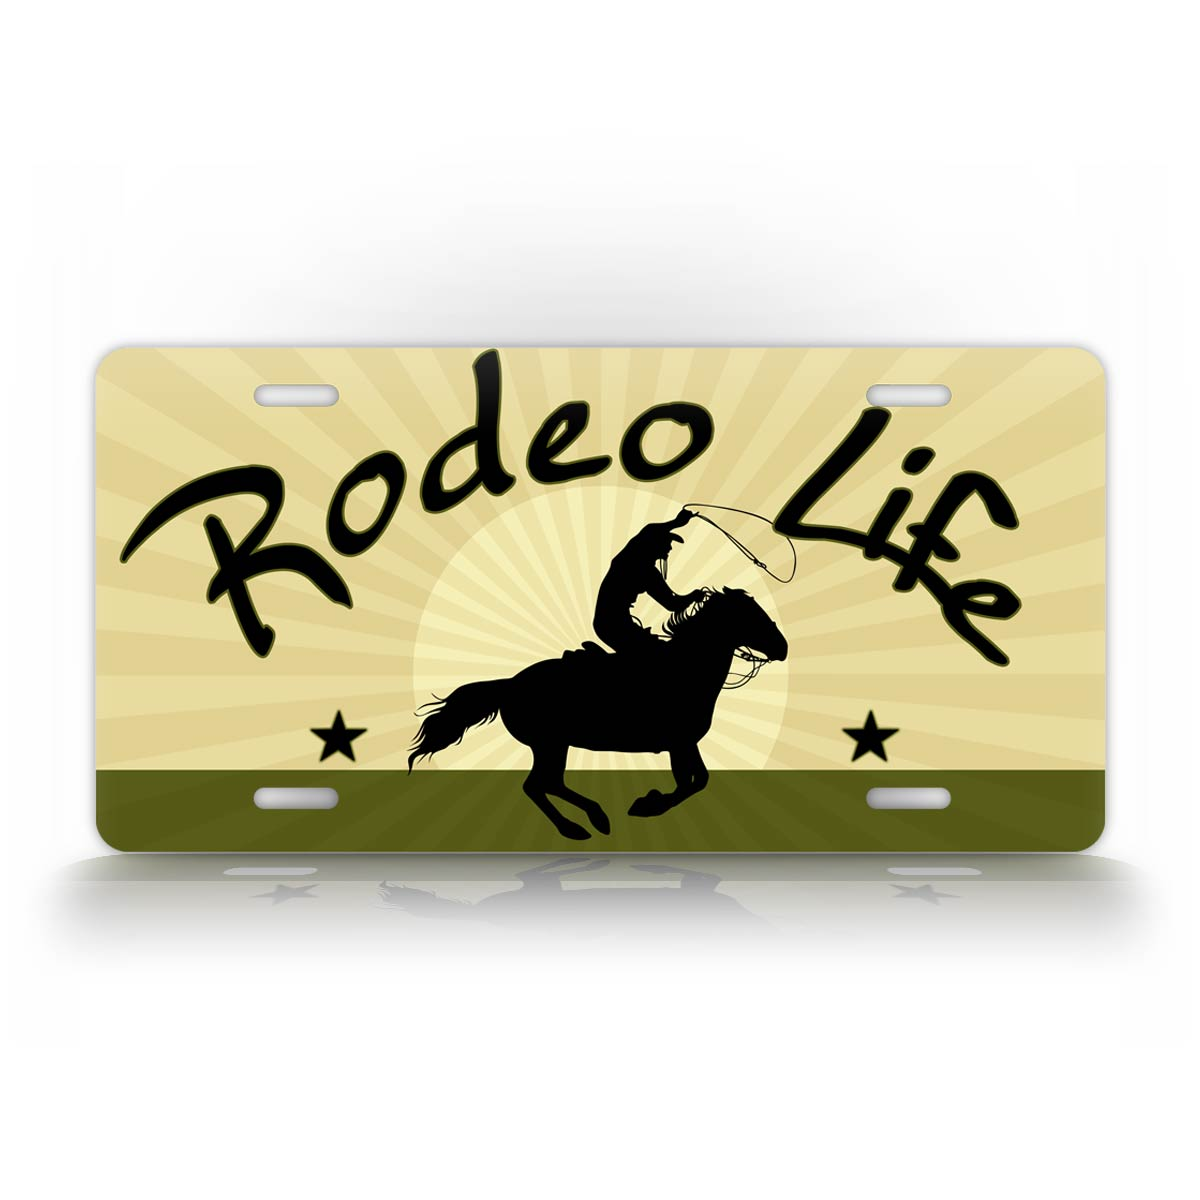 Rodeo Life Cowboy Western Style License Plate